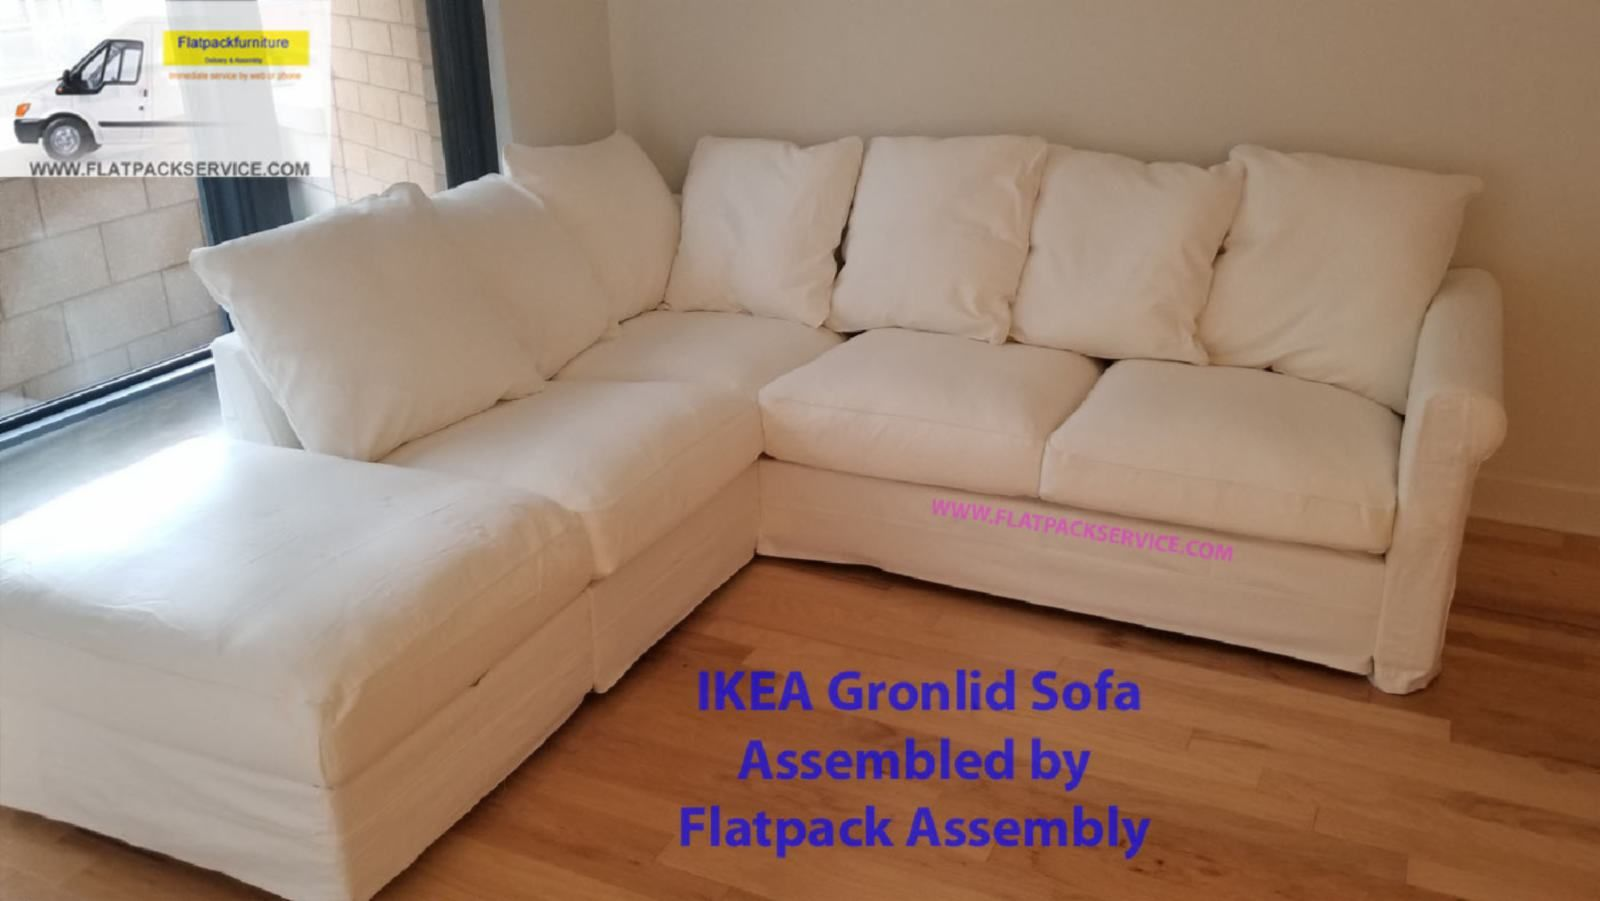 Tremendous Ikea Sofa Assembly Flatpack Assembly 240 603 2781 Furniture Ibusinesslaw Wood Chair Design Ideas Ibusinesslaworg